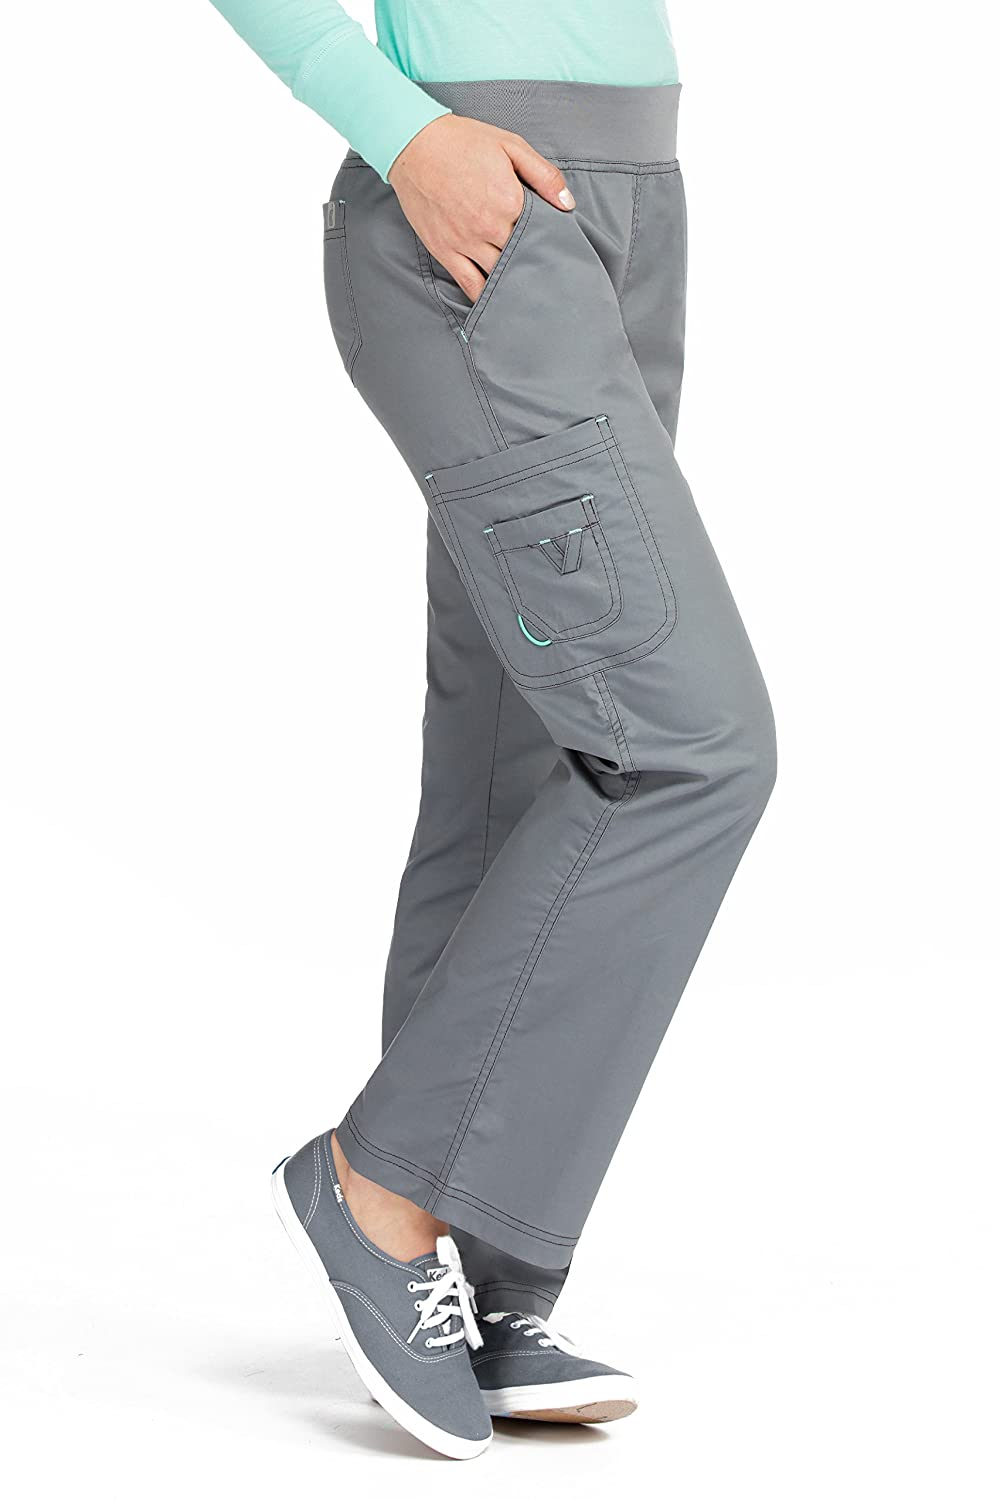 Med Couture Womens Scrub Bottoms Image 2